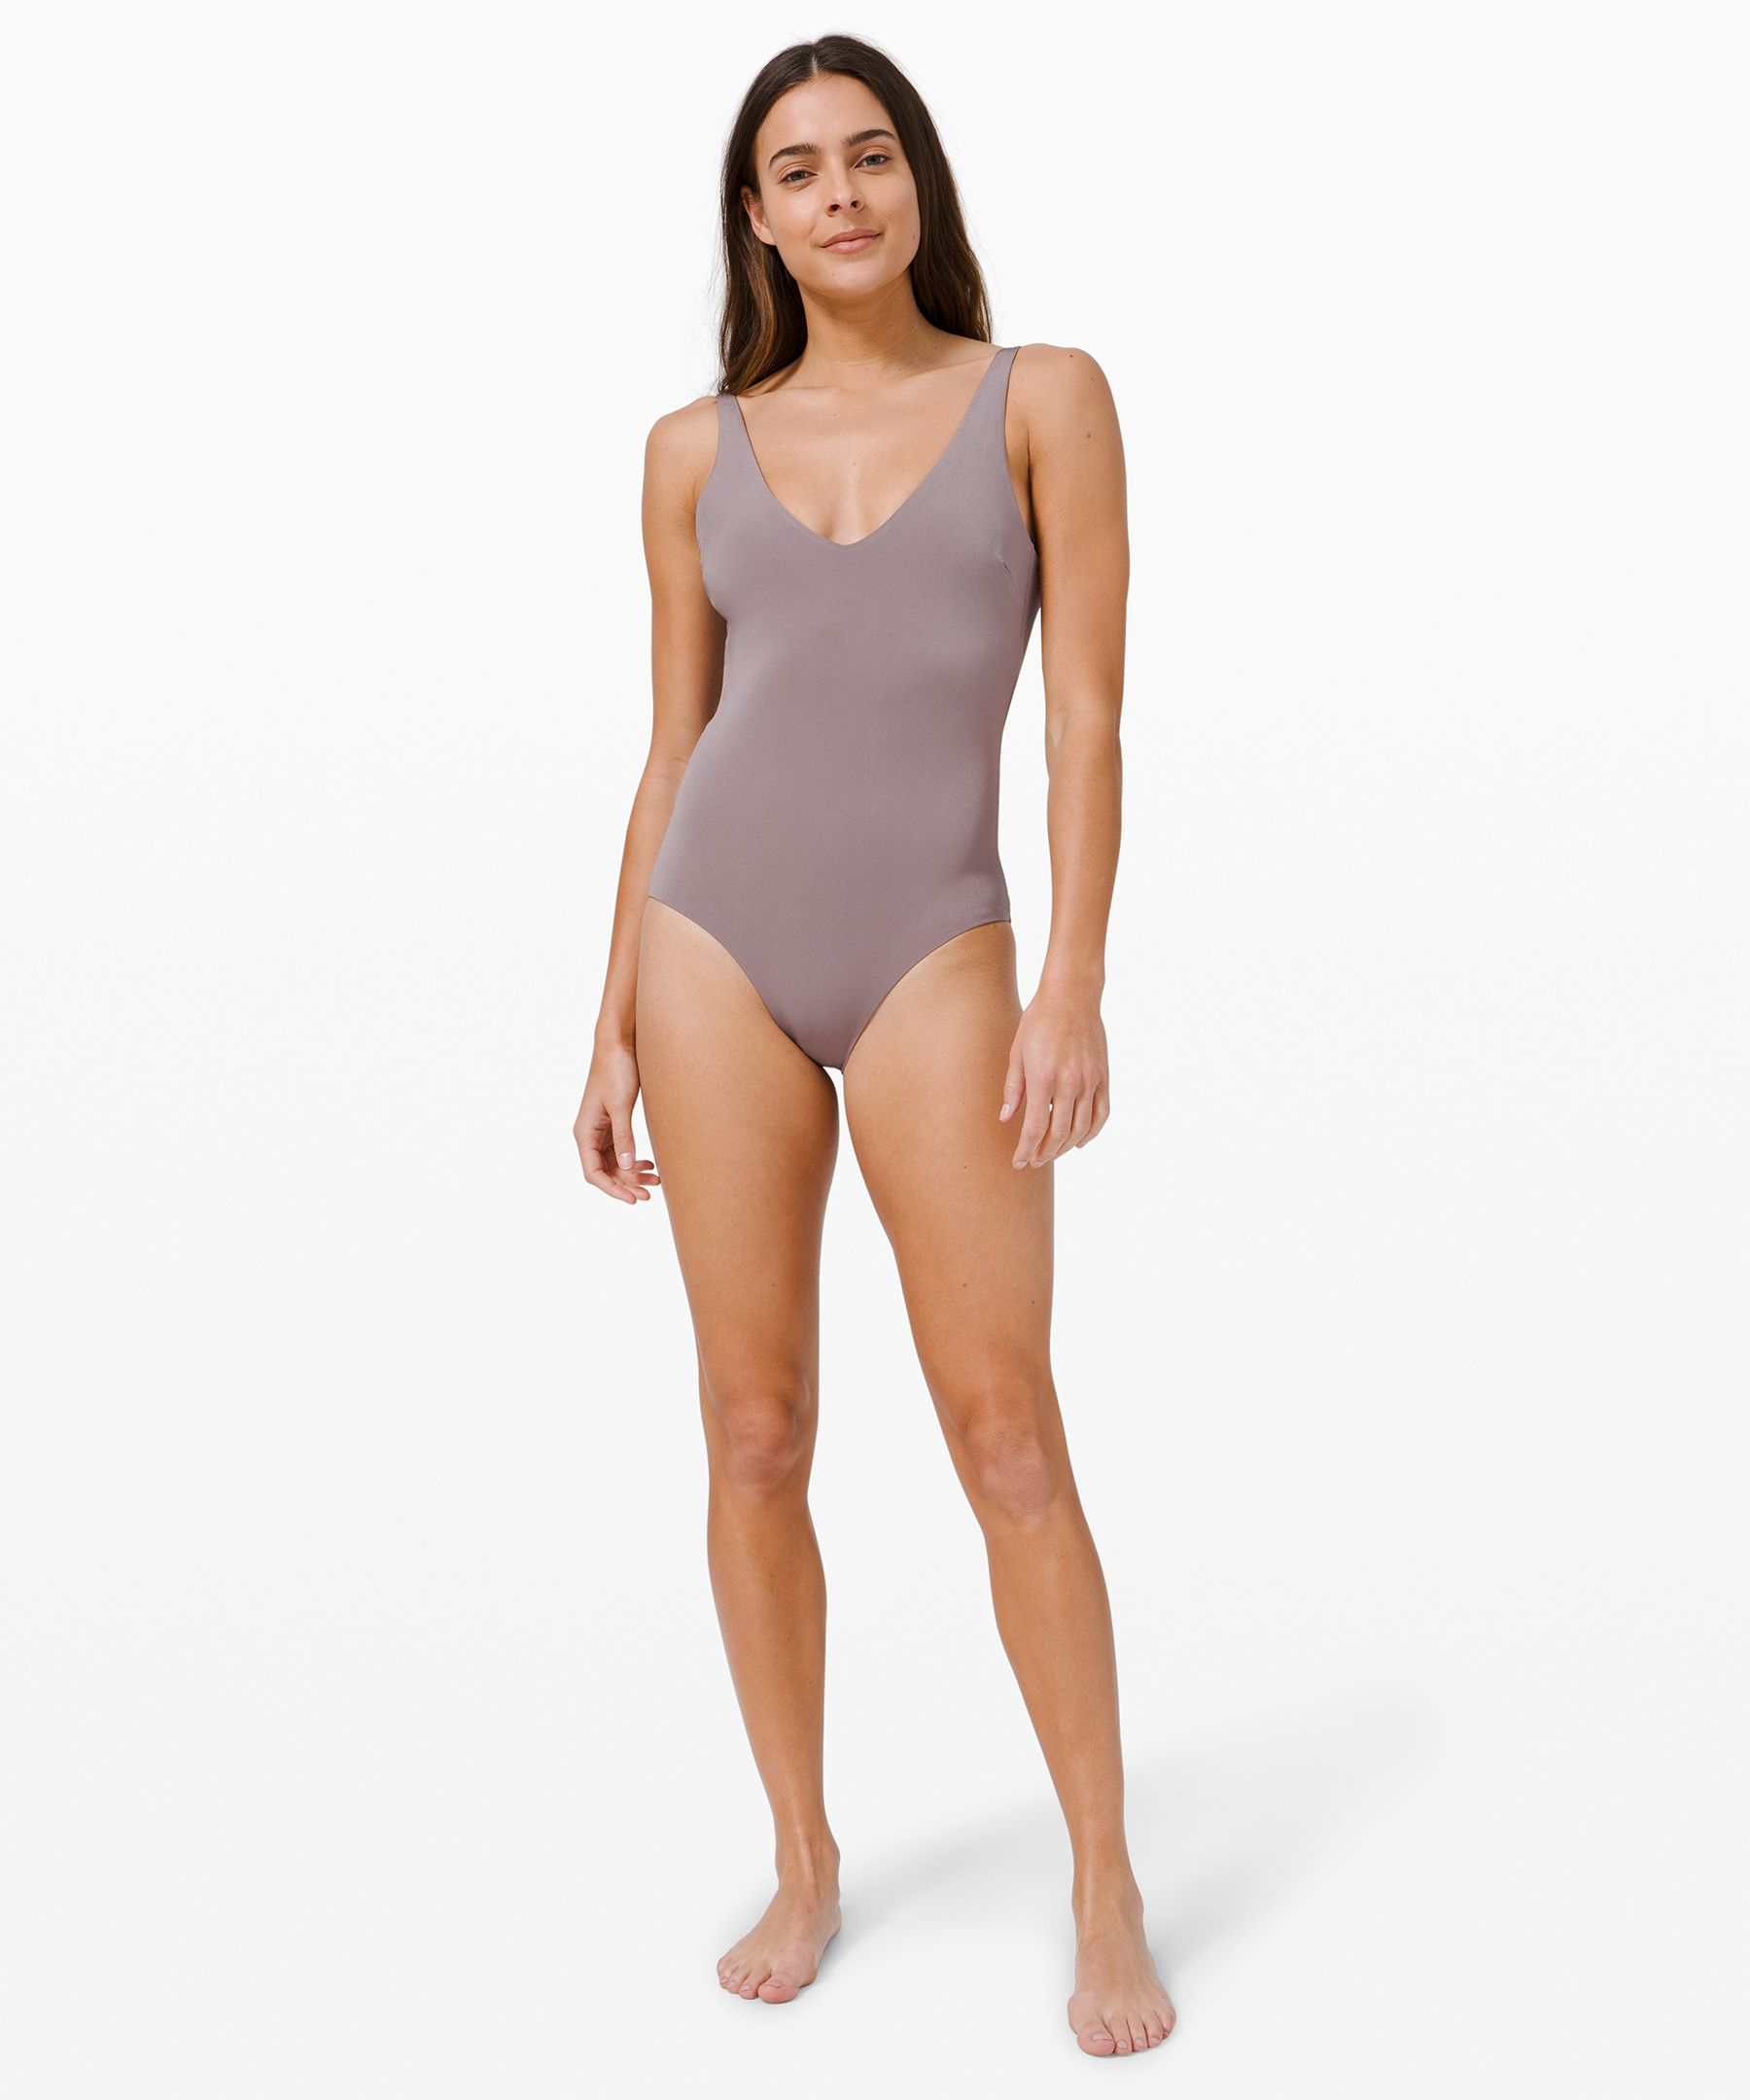 All that Glimmers MB One-Piece